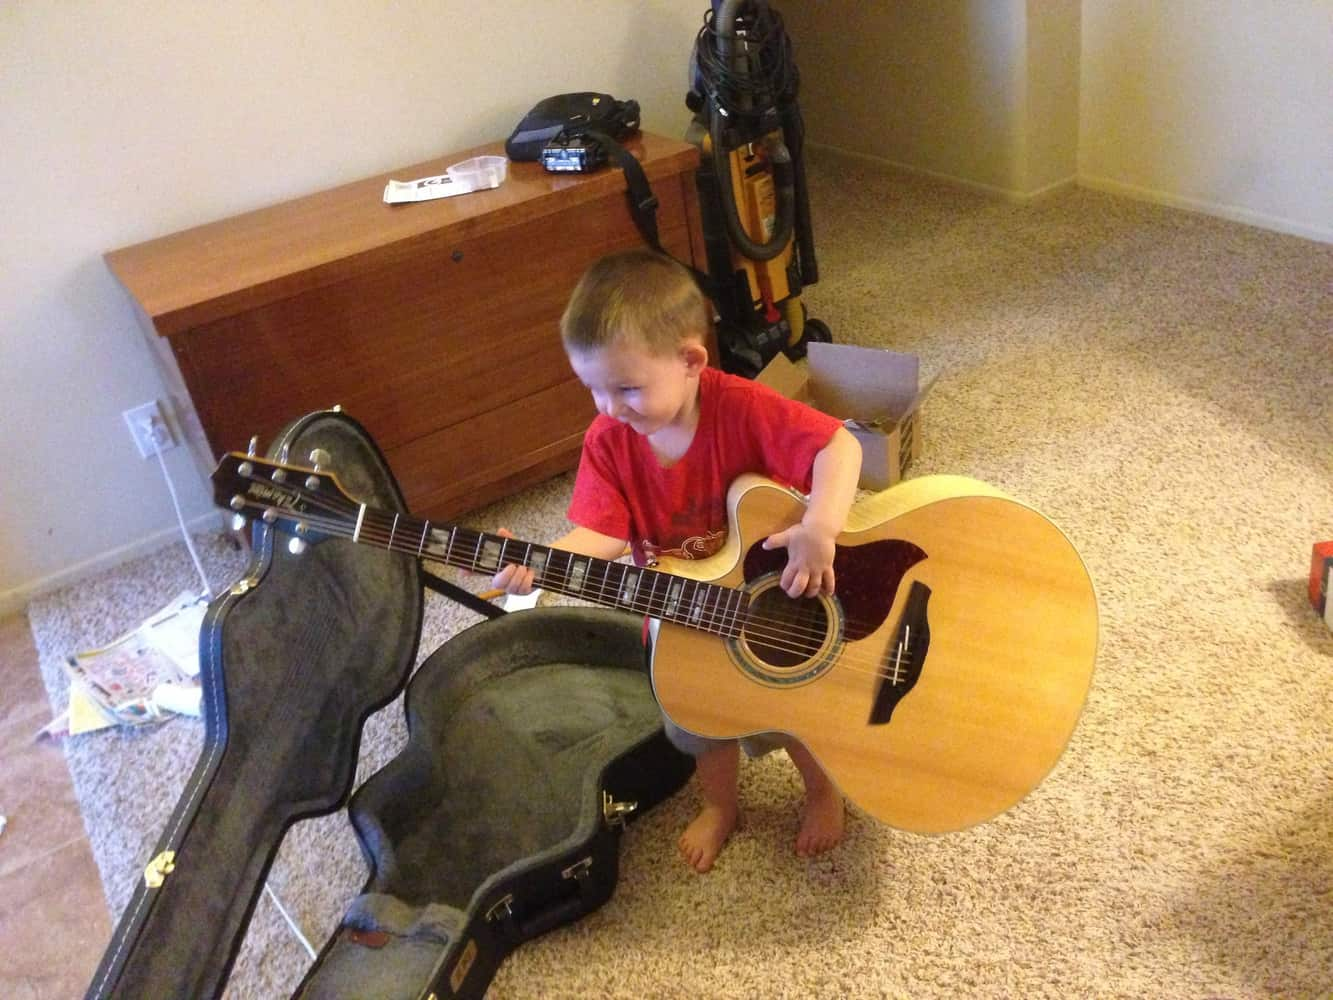 Kid holding a big guitar -Mike Levitsky